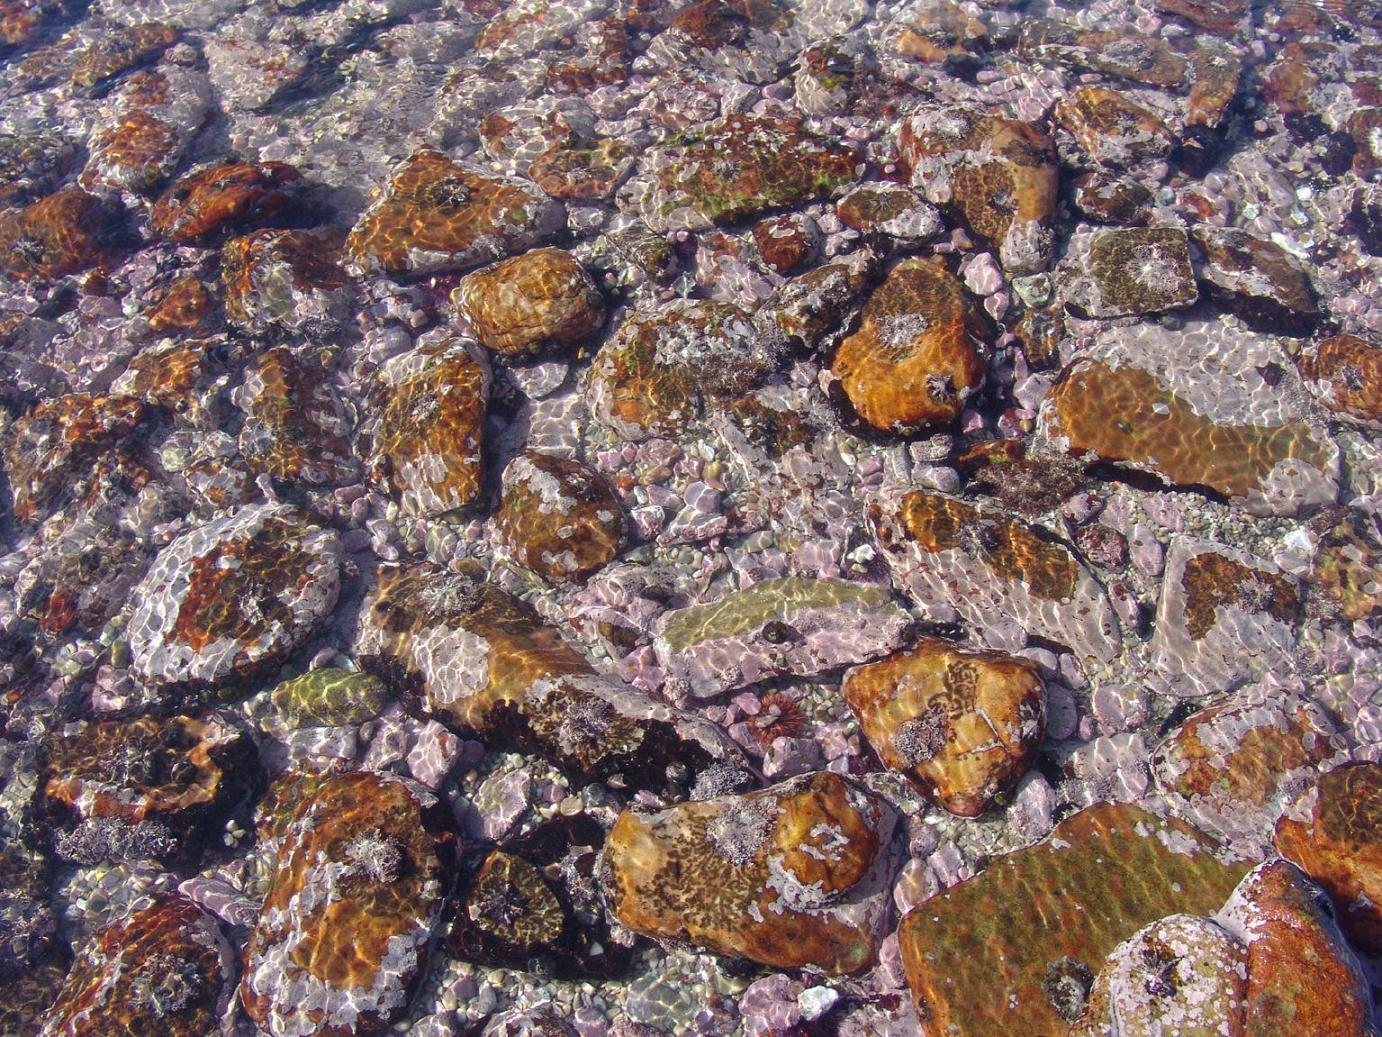 (coralline mosaic): The intertidal and shallow subtidal zones of the Agulhas region are rich in diversity of encrusting coralline algae that often form a mosaic of pink encrusting mats.